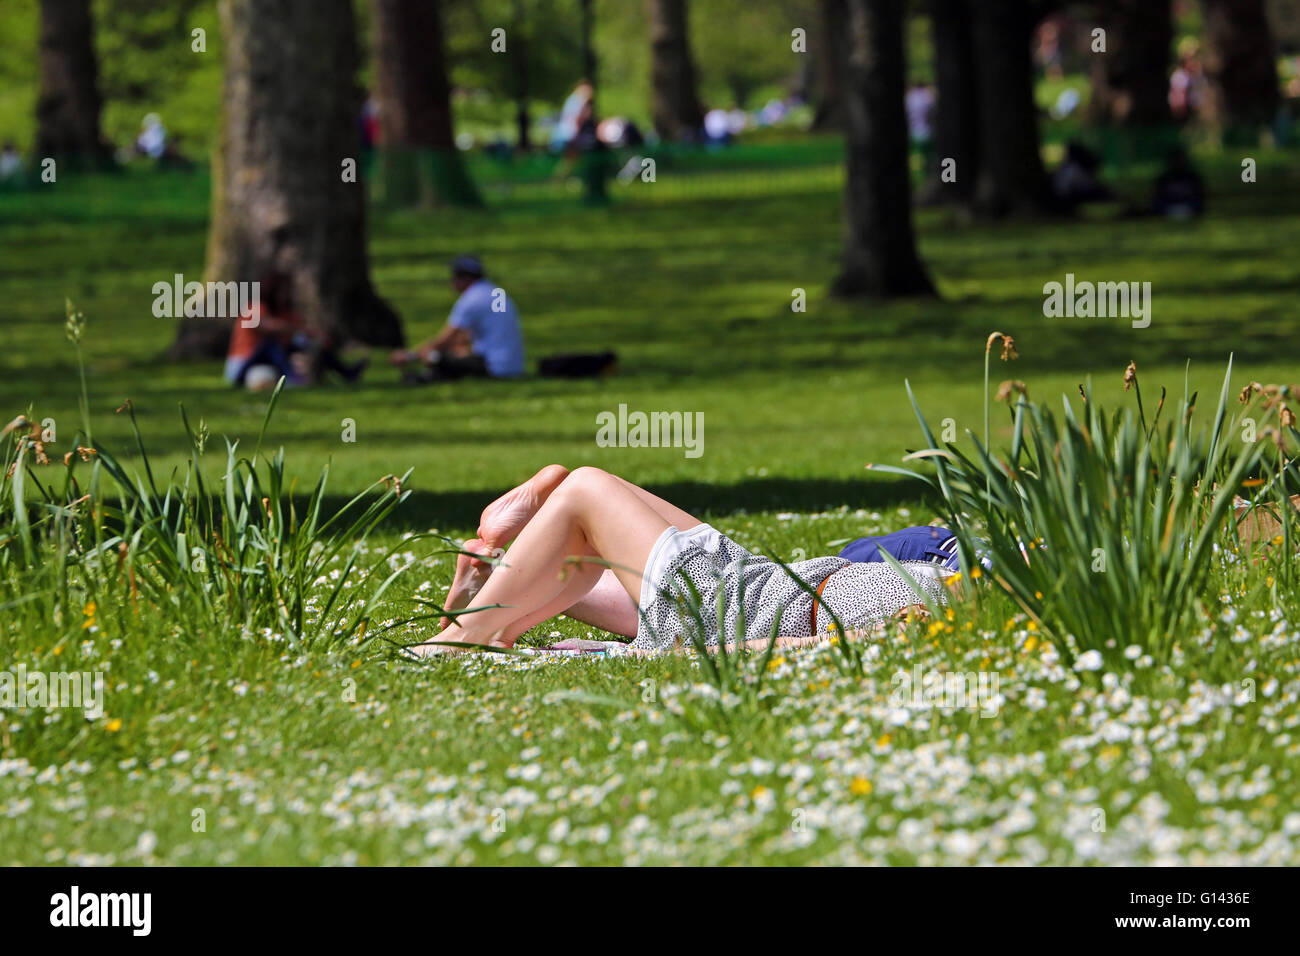 London, UK. 8th May 2016. Hot Summer Weather brings people out sunbathing in Green Park in London, England Credit: - Stock Image